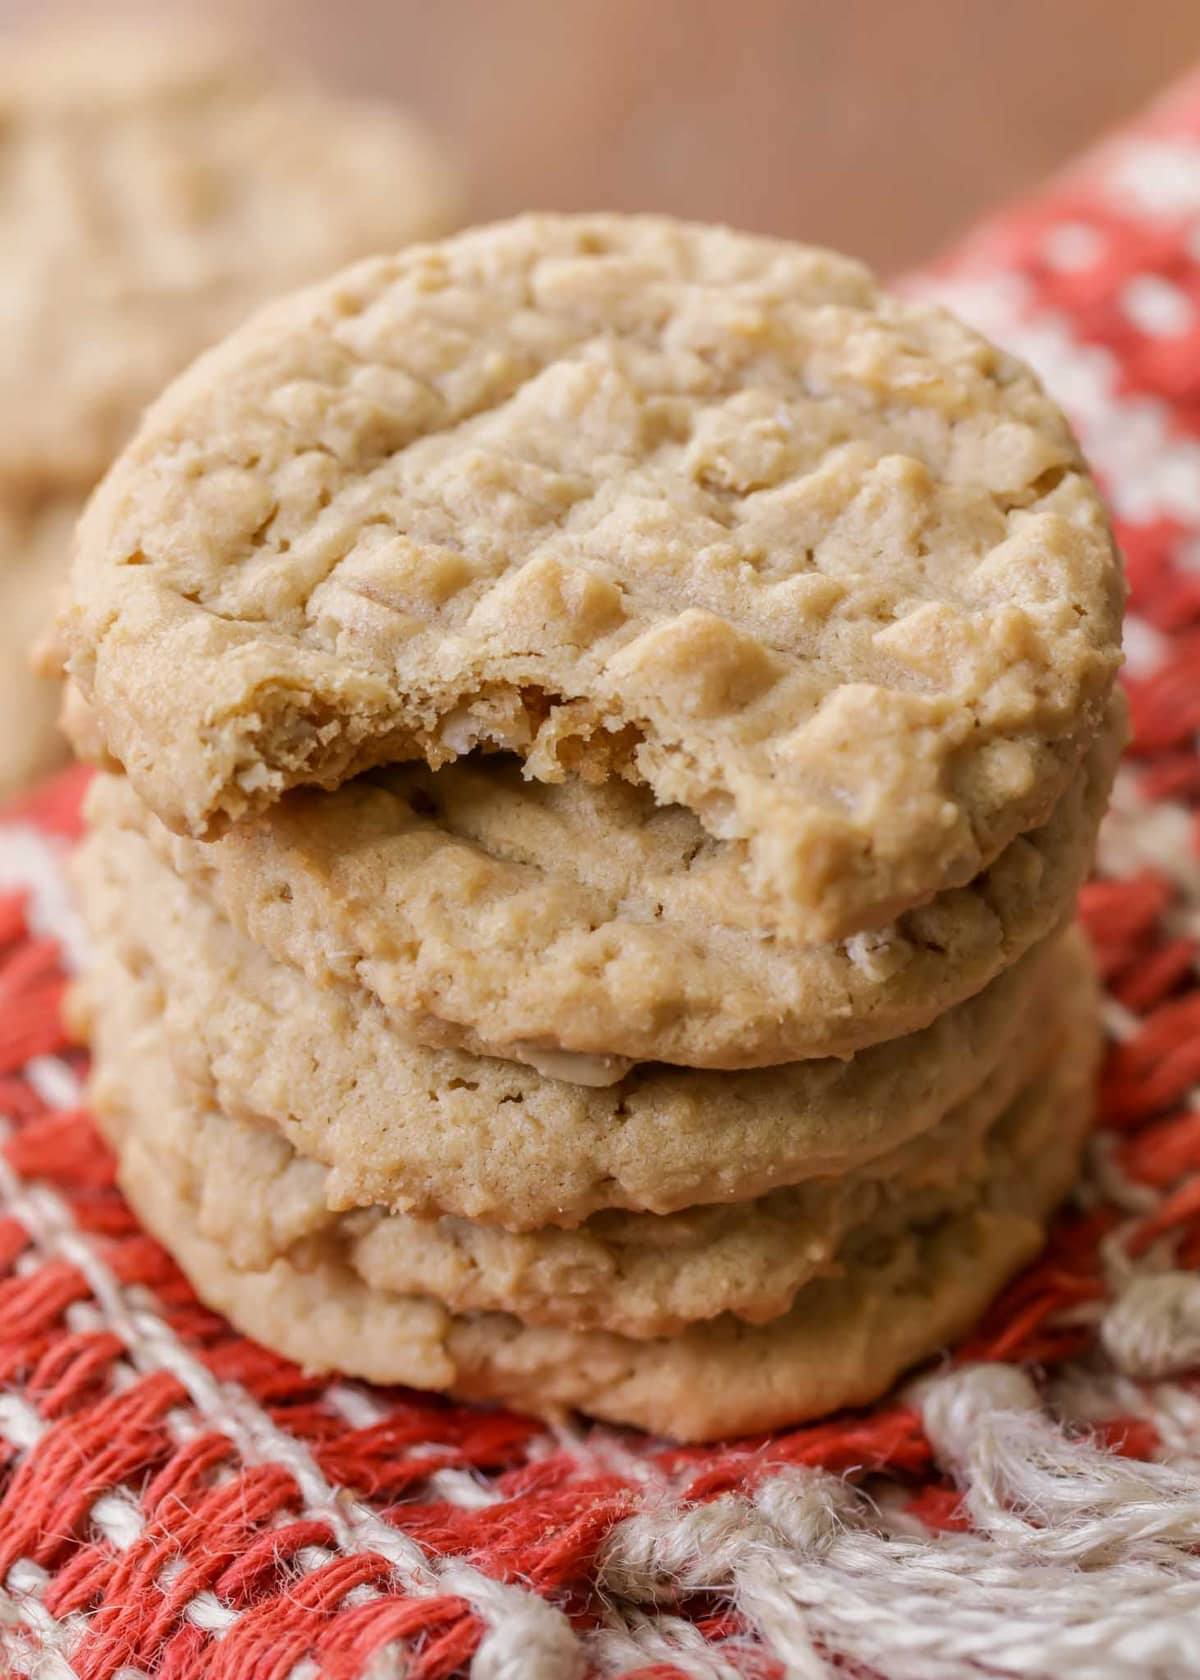 Chewy Peanut Butter Oatmeal Cookie with a bite taken out